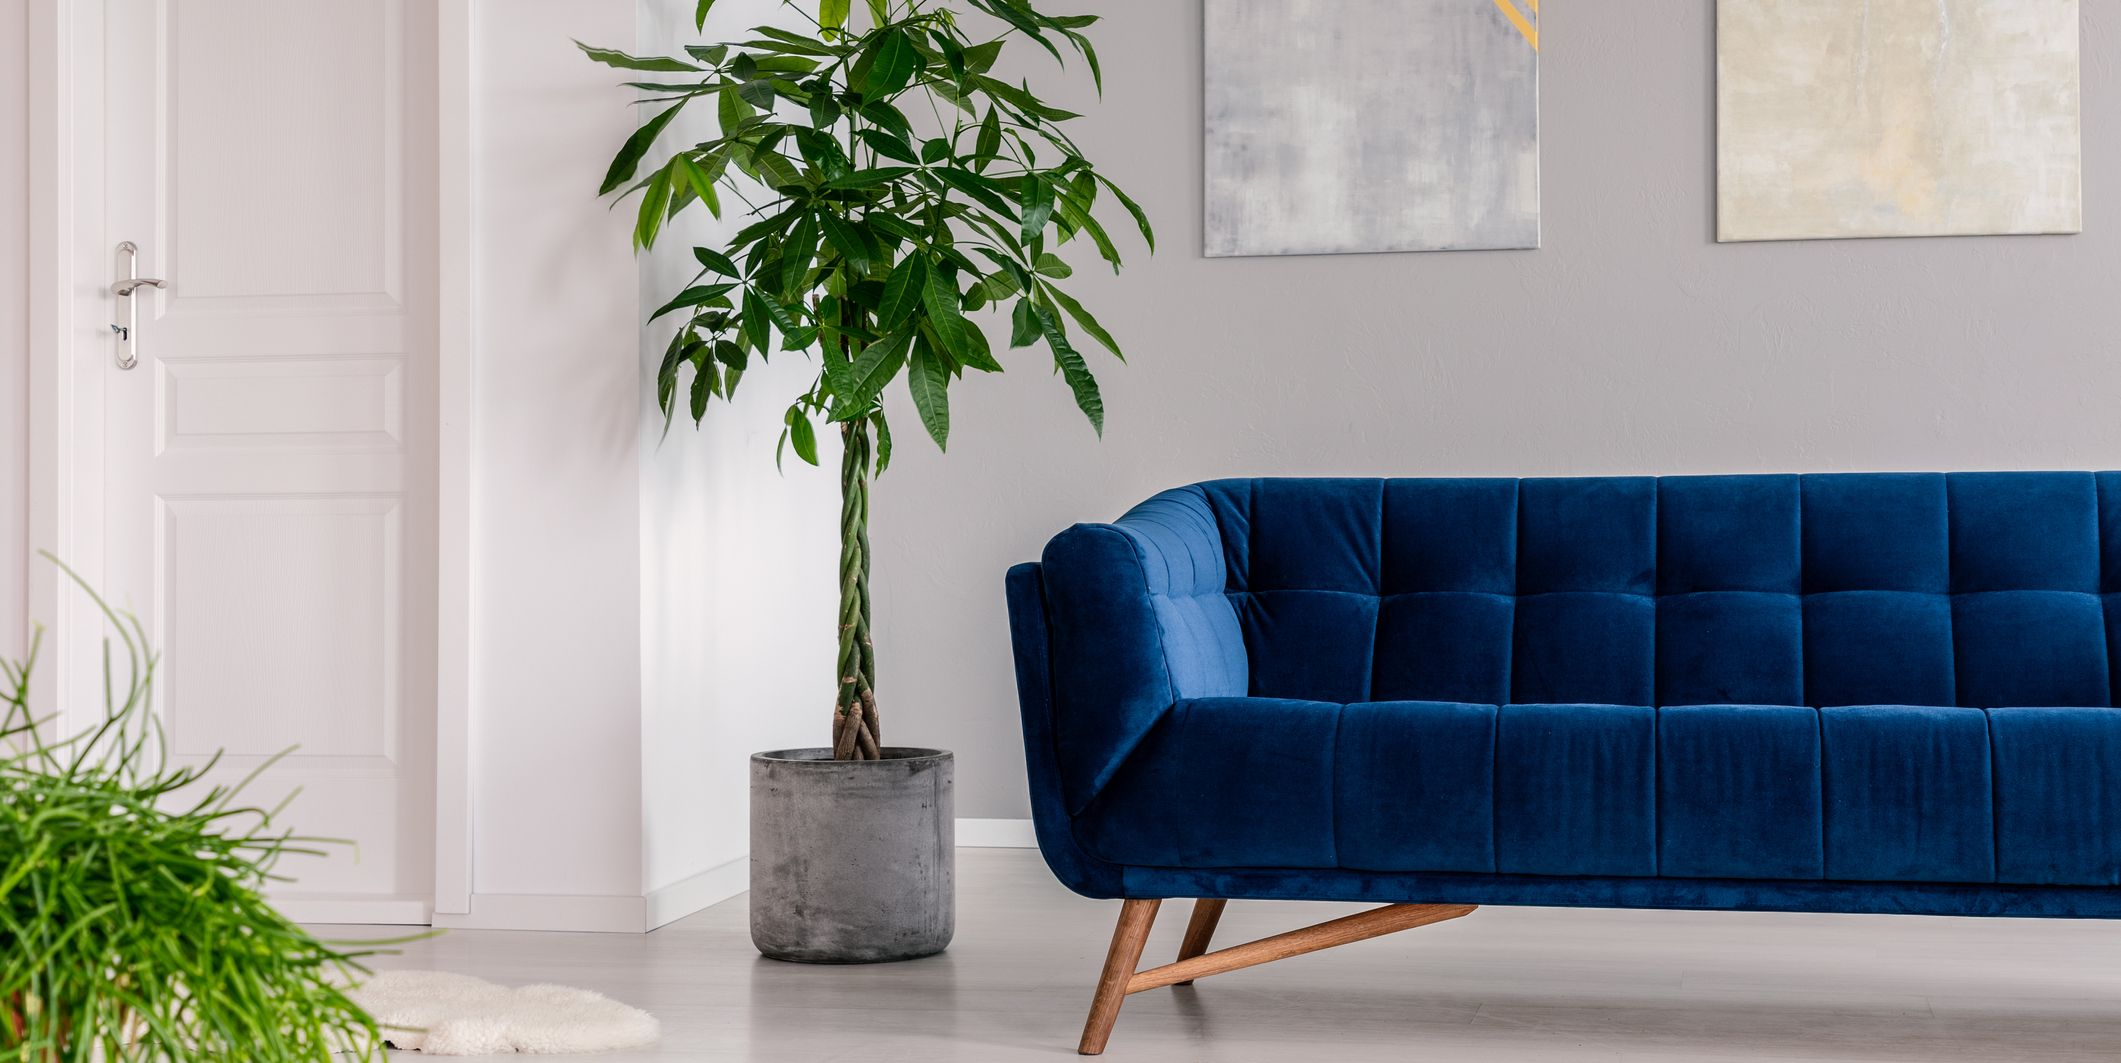 Waiting room interior in a luxurious clinic furnished with a velvet dark blue sofa, a rug and green plants. Real photo.